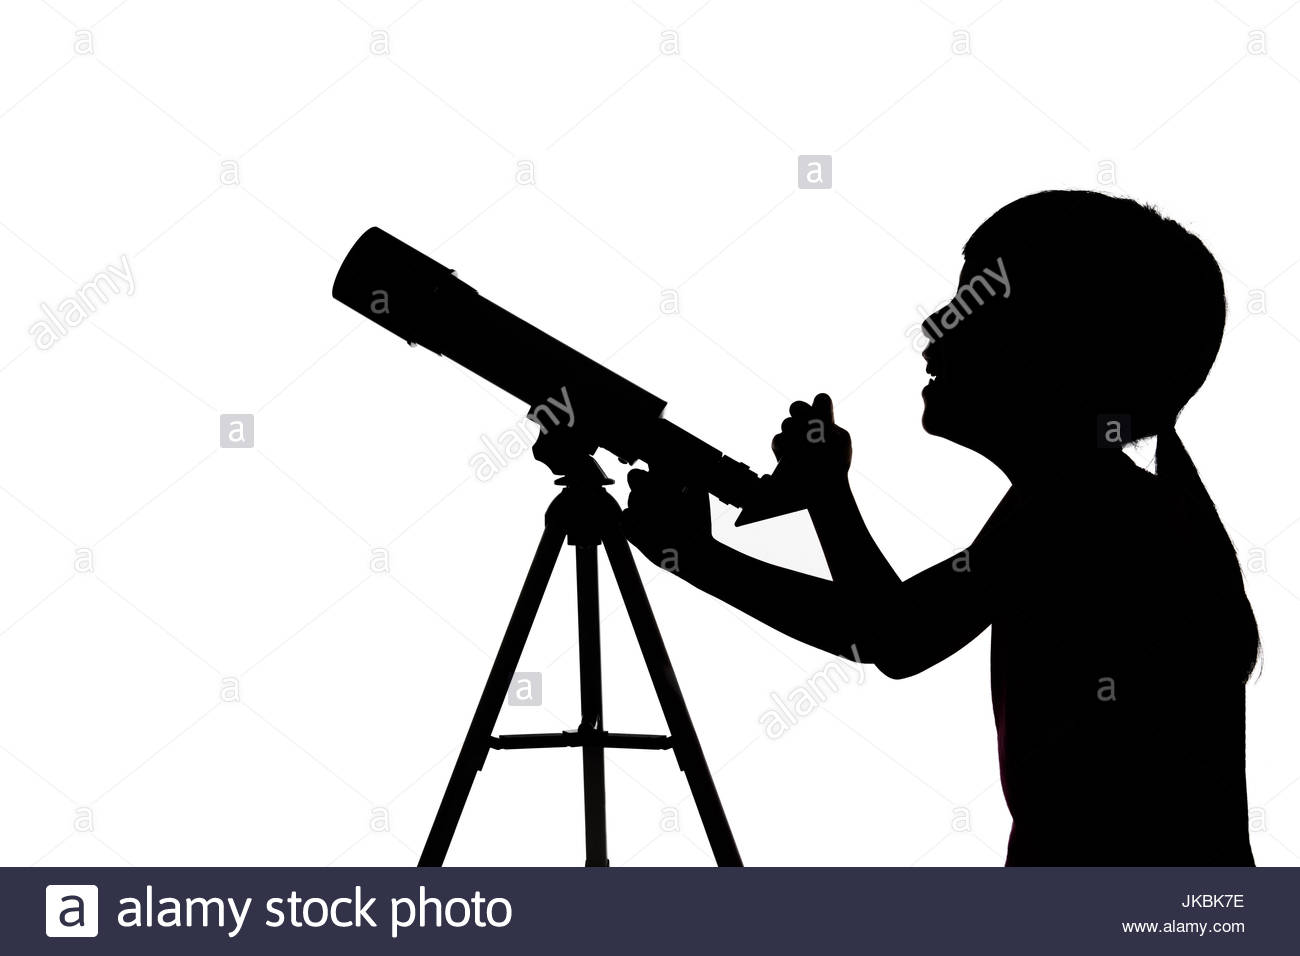 1300x956 Silhouette Of Little Girl Looking Through A Telescope In Isolated